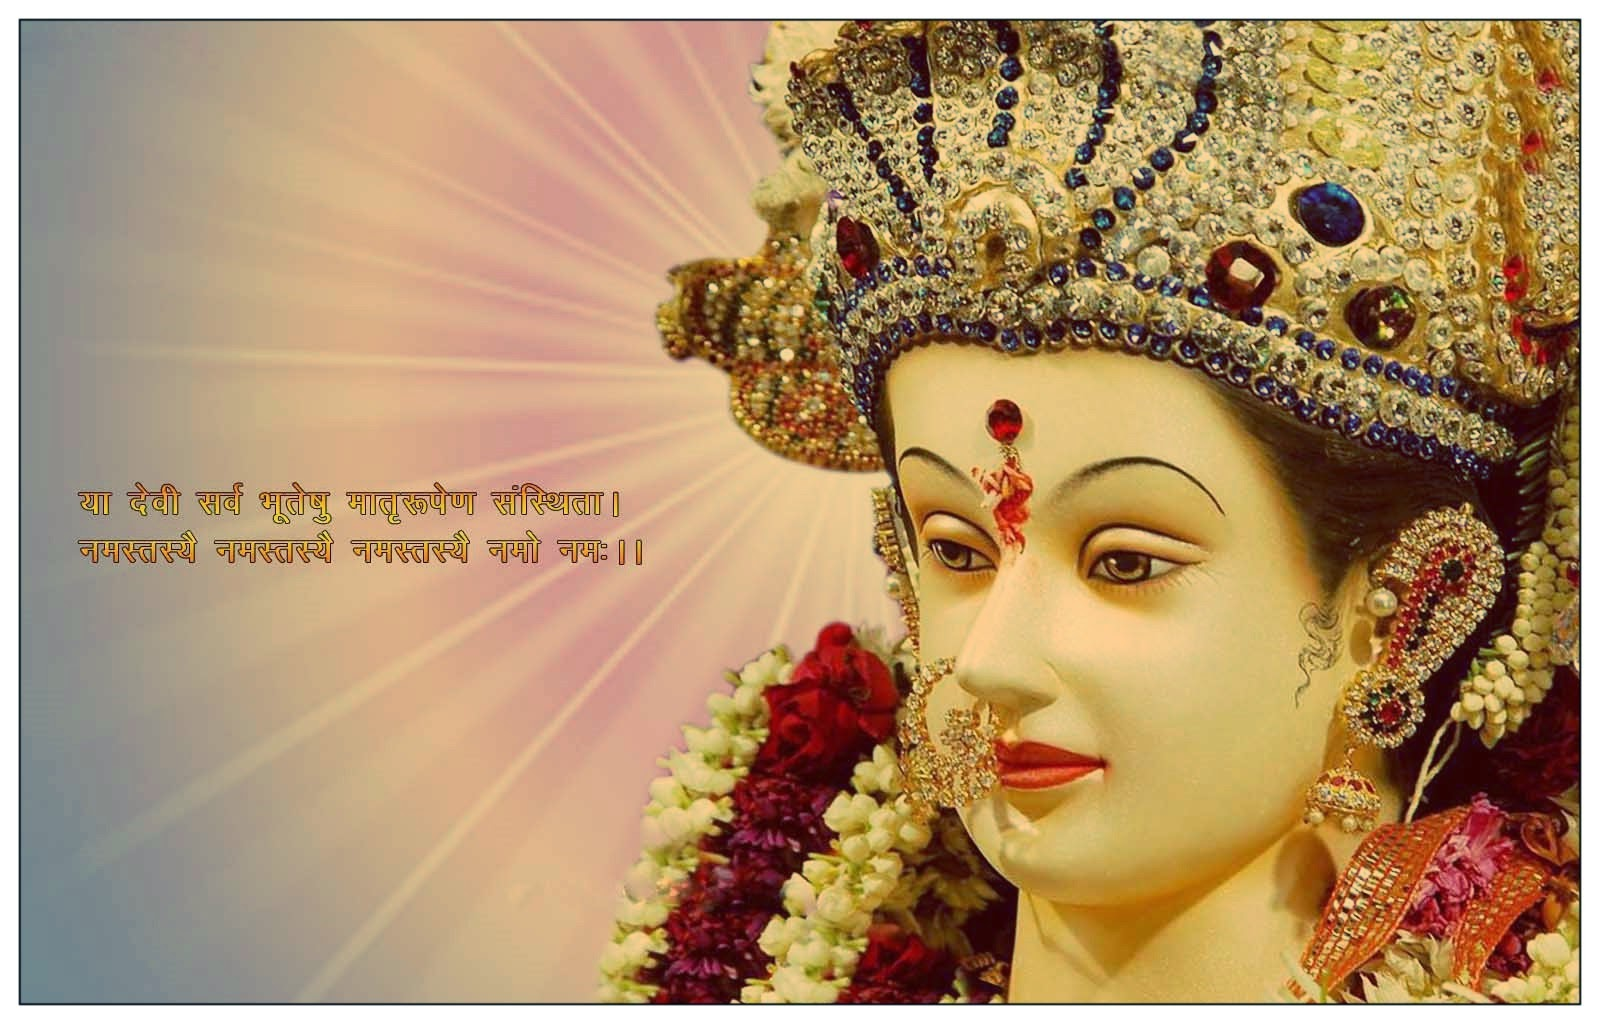 Mata Durga Devi ji Images for Free Download